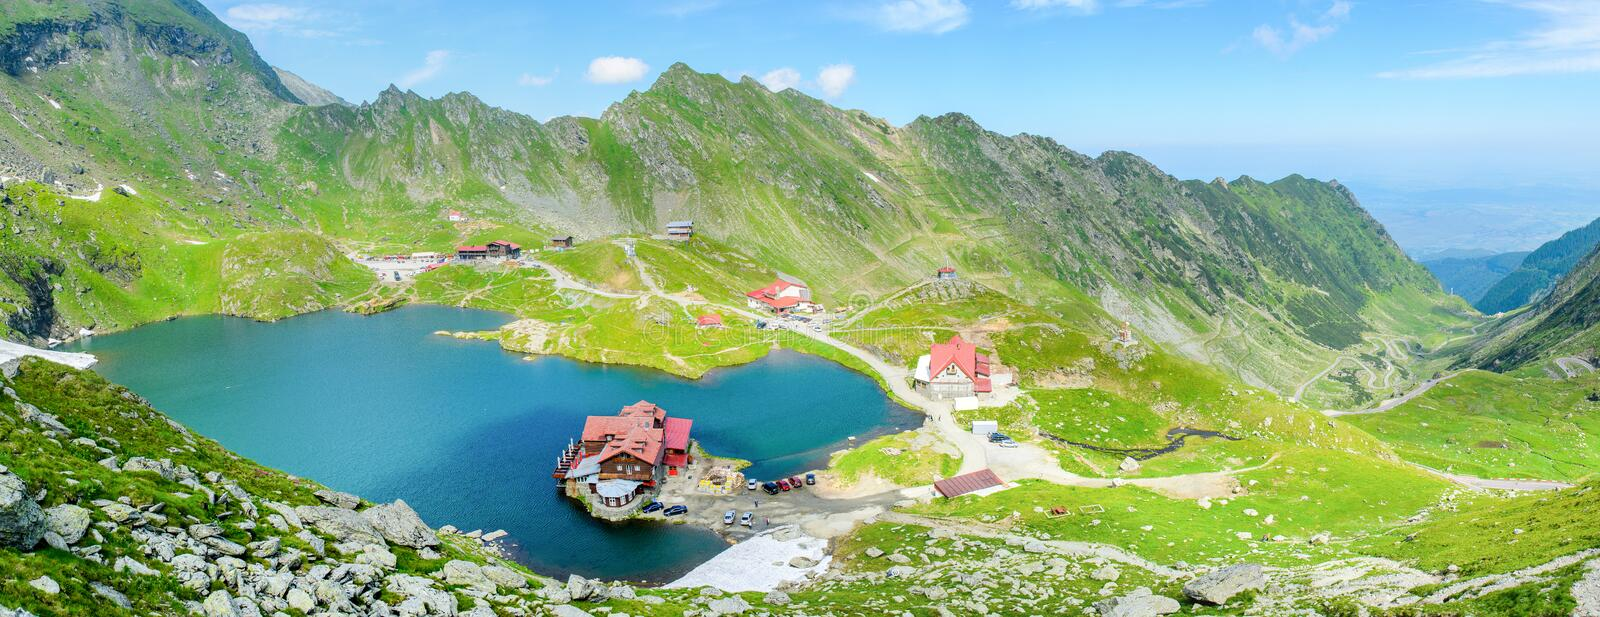 Balea Lac Transfagarasan Romania Landscape with Lake house, near Moldoveanu peak, Arges county, Transylvania, Romania. Balea ALc - Varful Moldoveanu- Muntii stock images